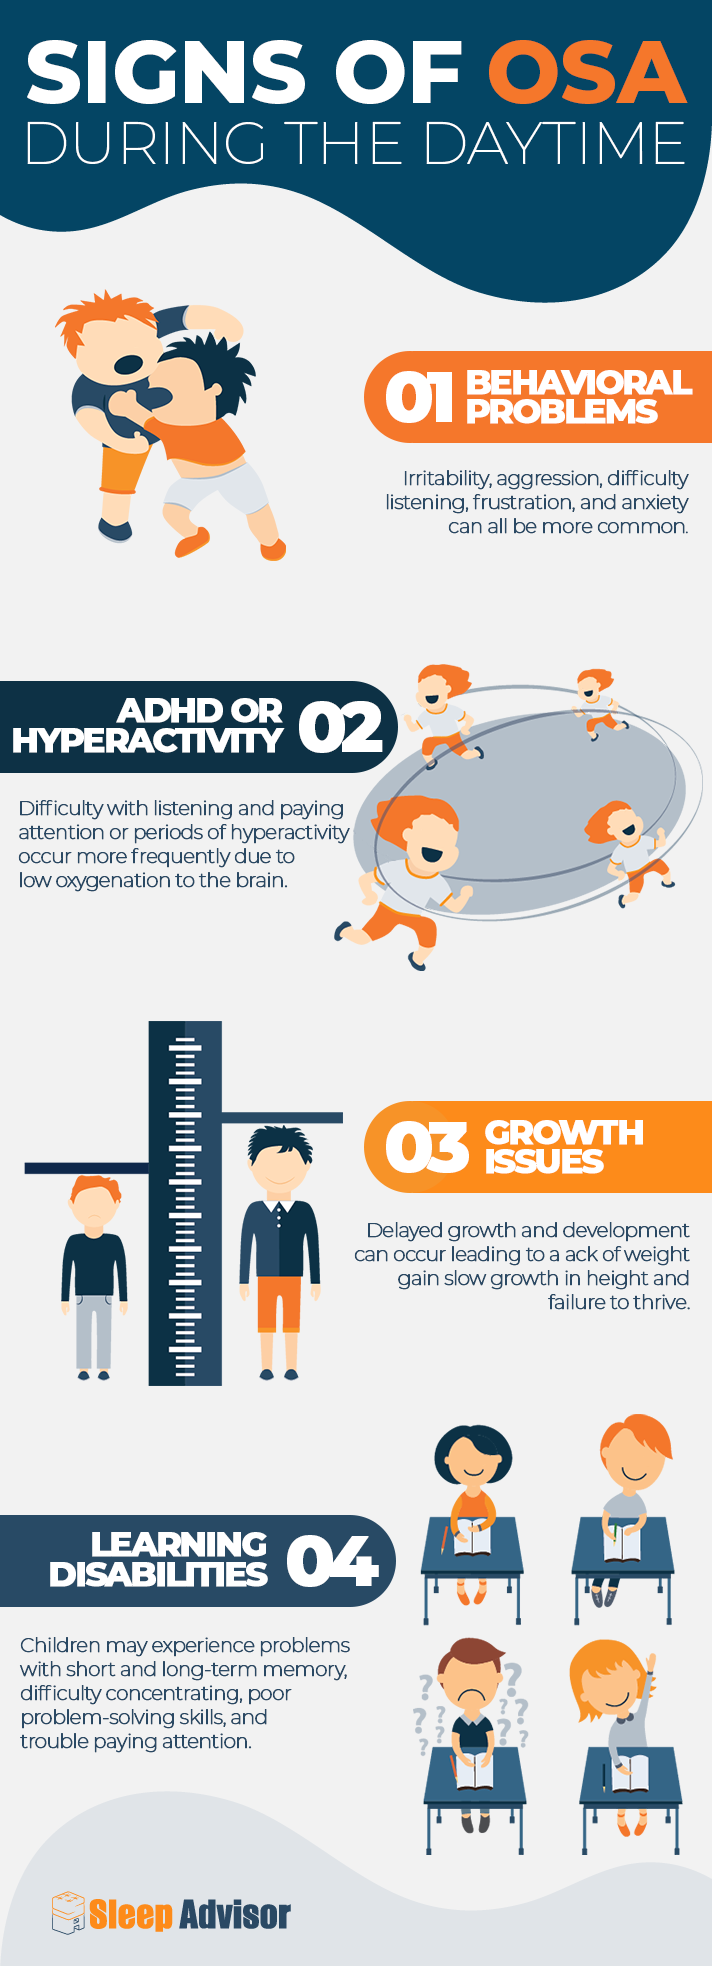 Signs of OSA During the Daytime Infographic